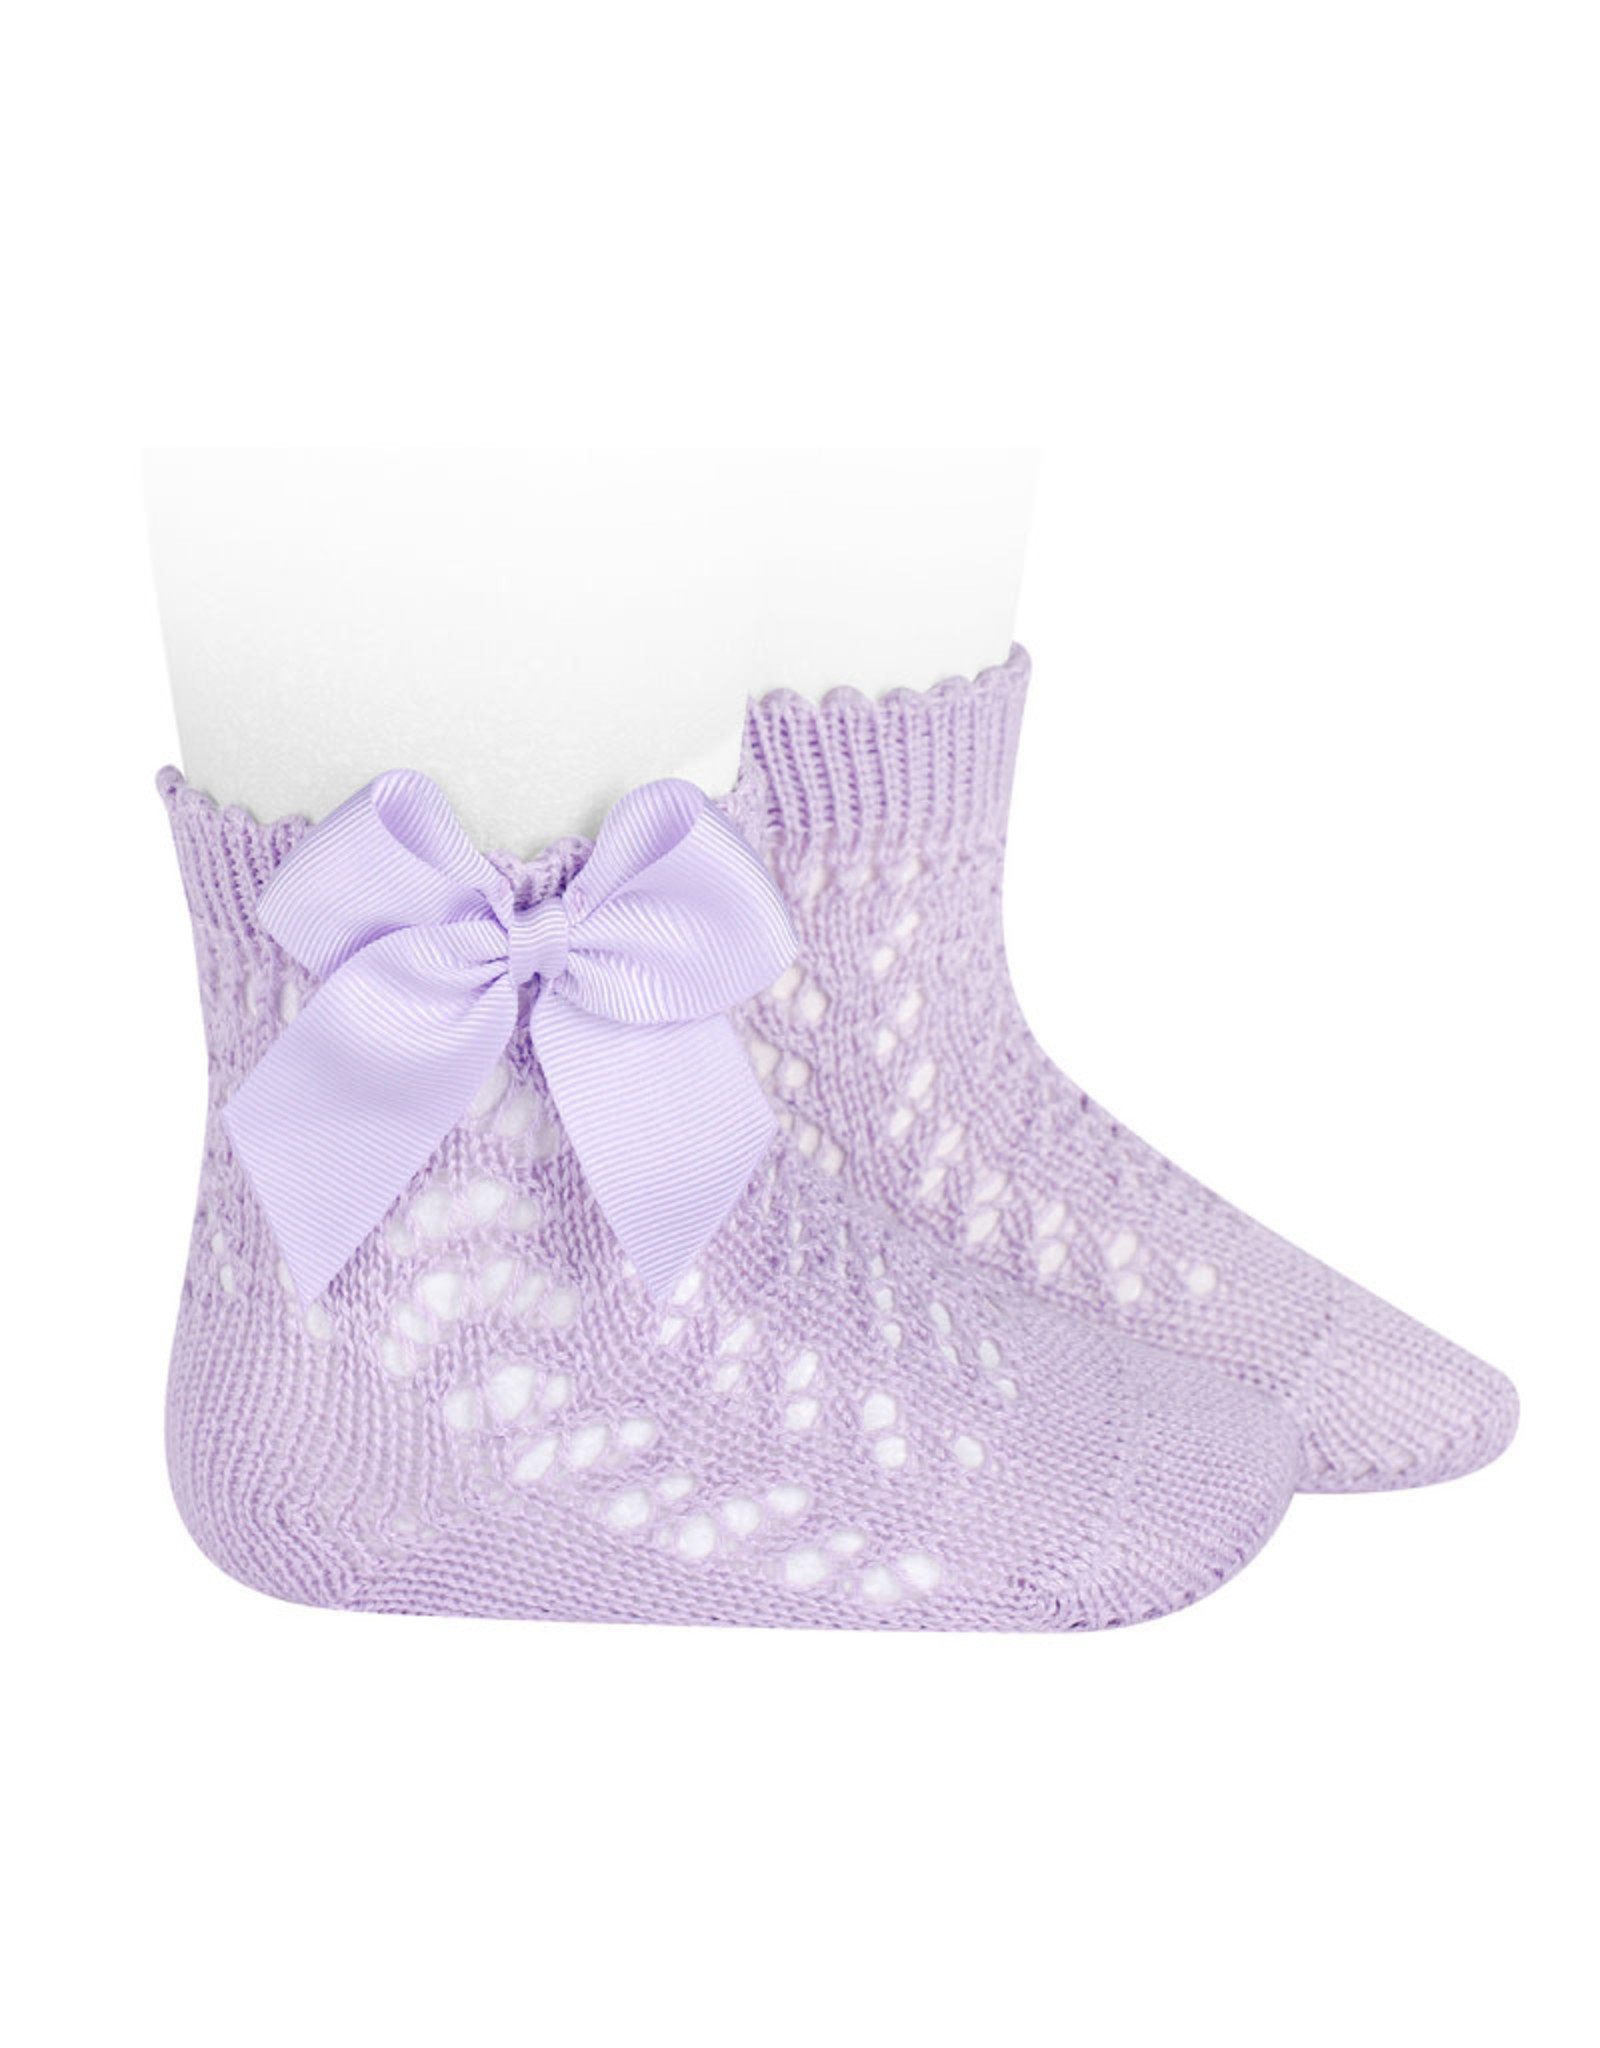 CONDOR Mauve Openwork Short Socks with Bow